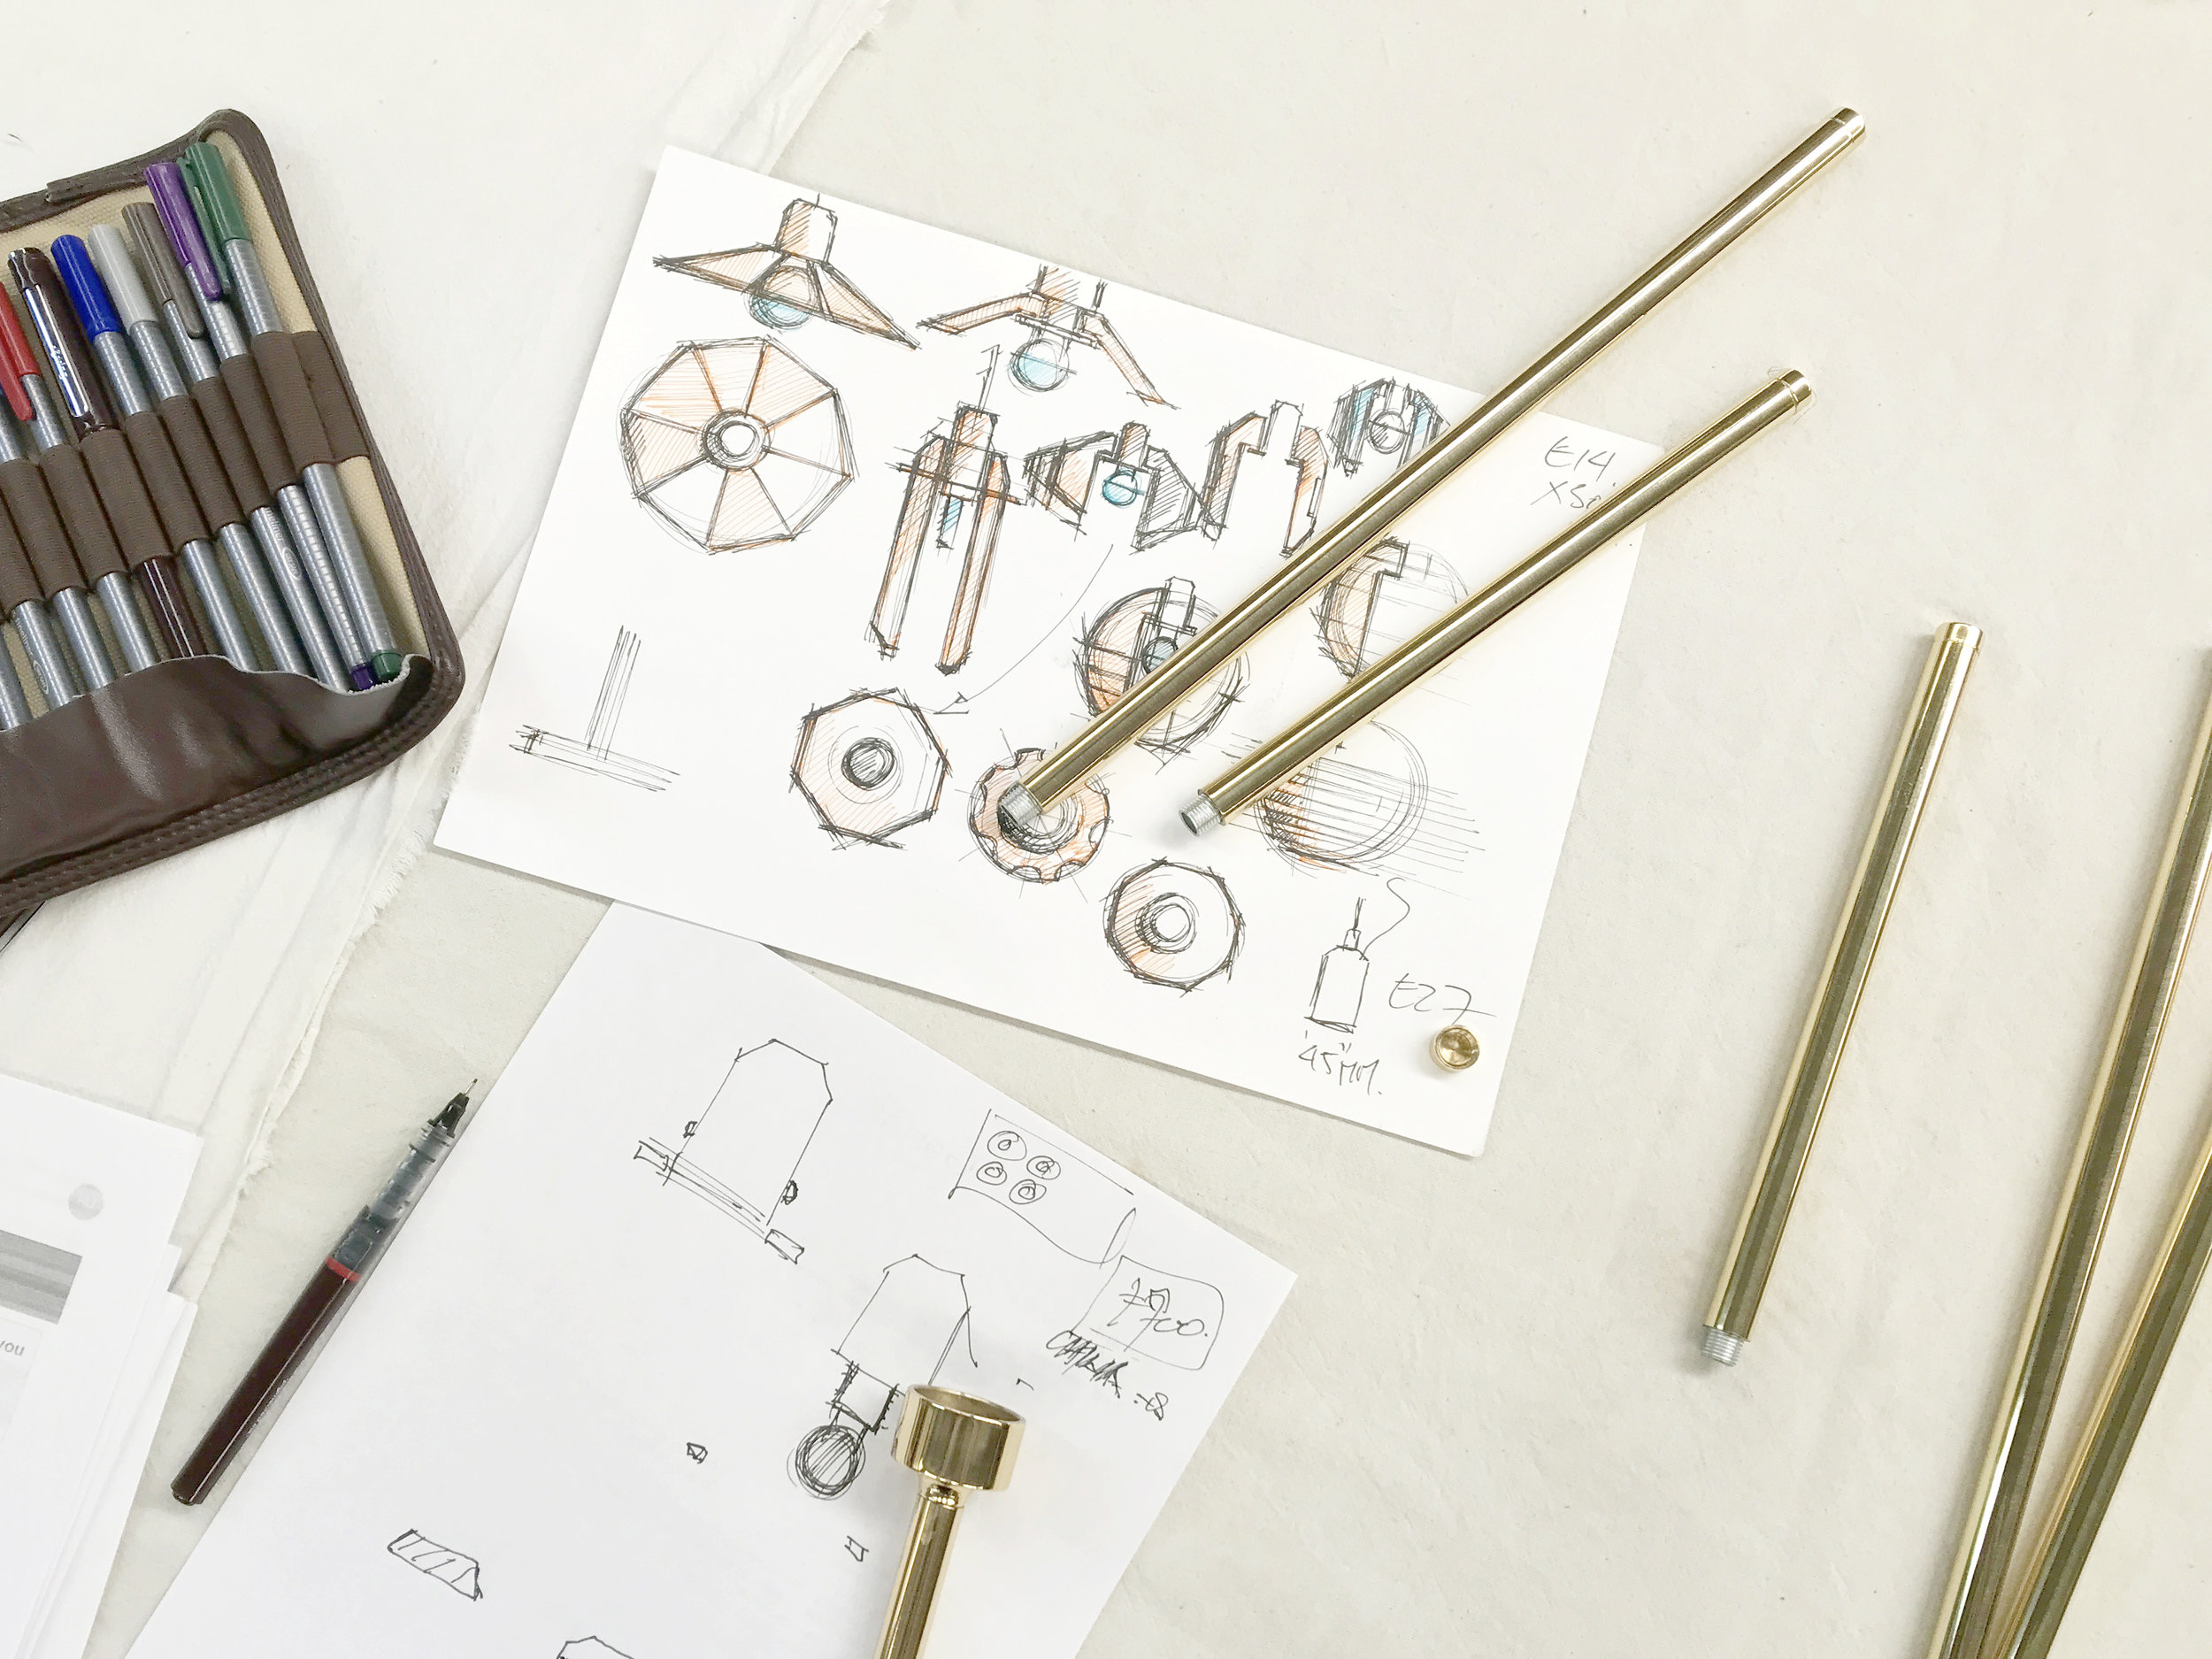 Gestalt Aquiline - photograph of sketches and prototypes